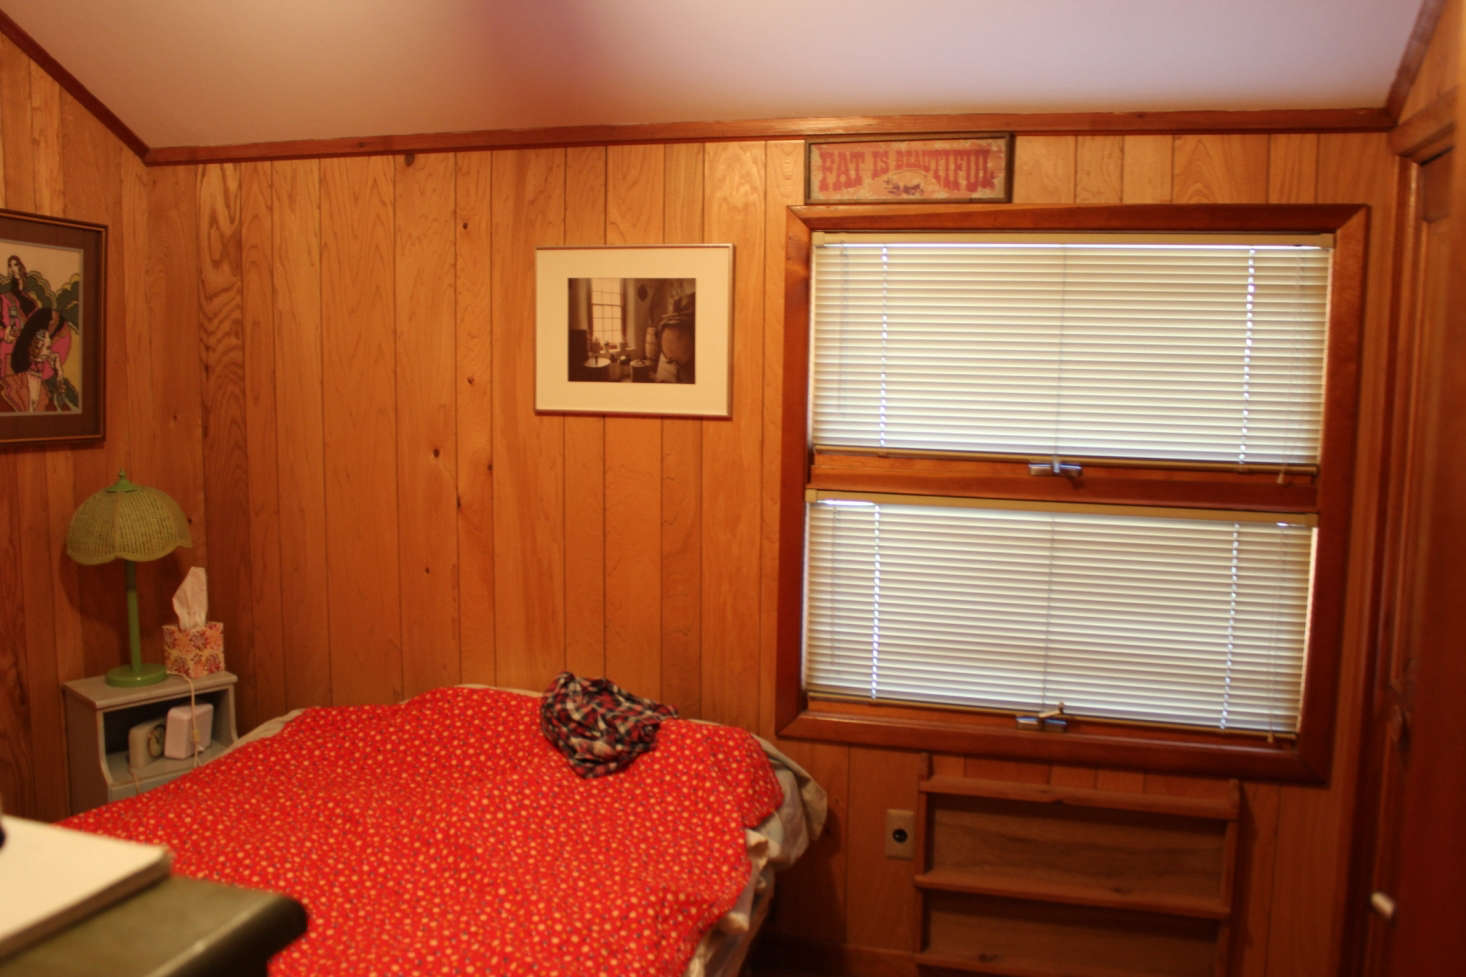 A guest bedroom was covered in dark wood paneling.